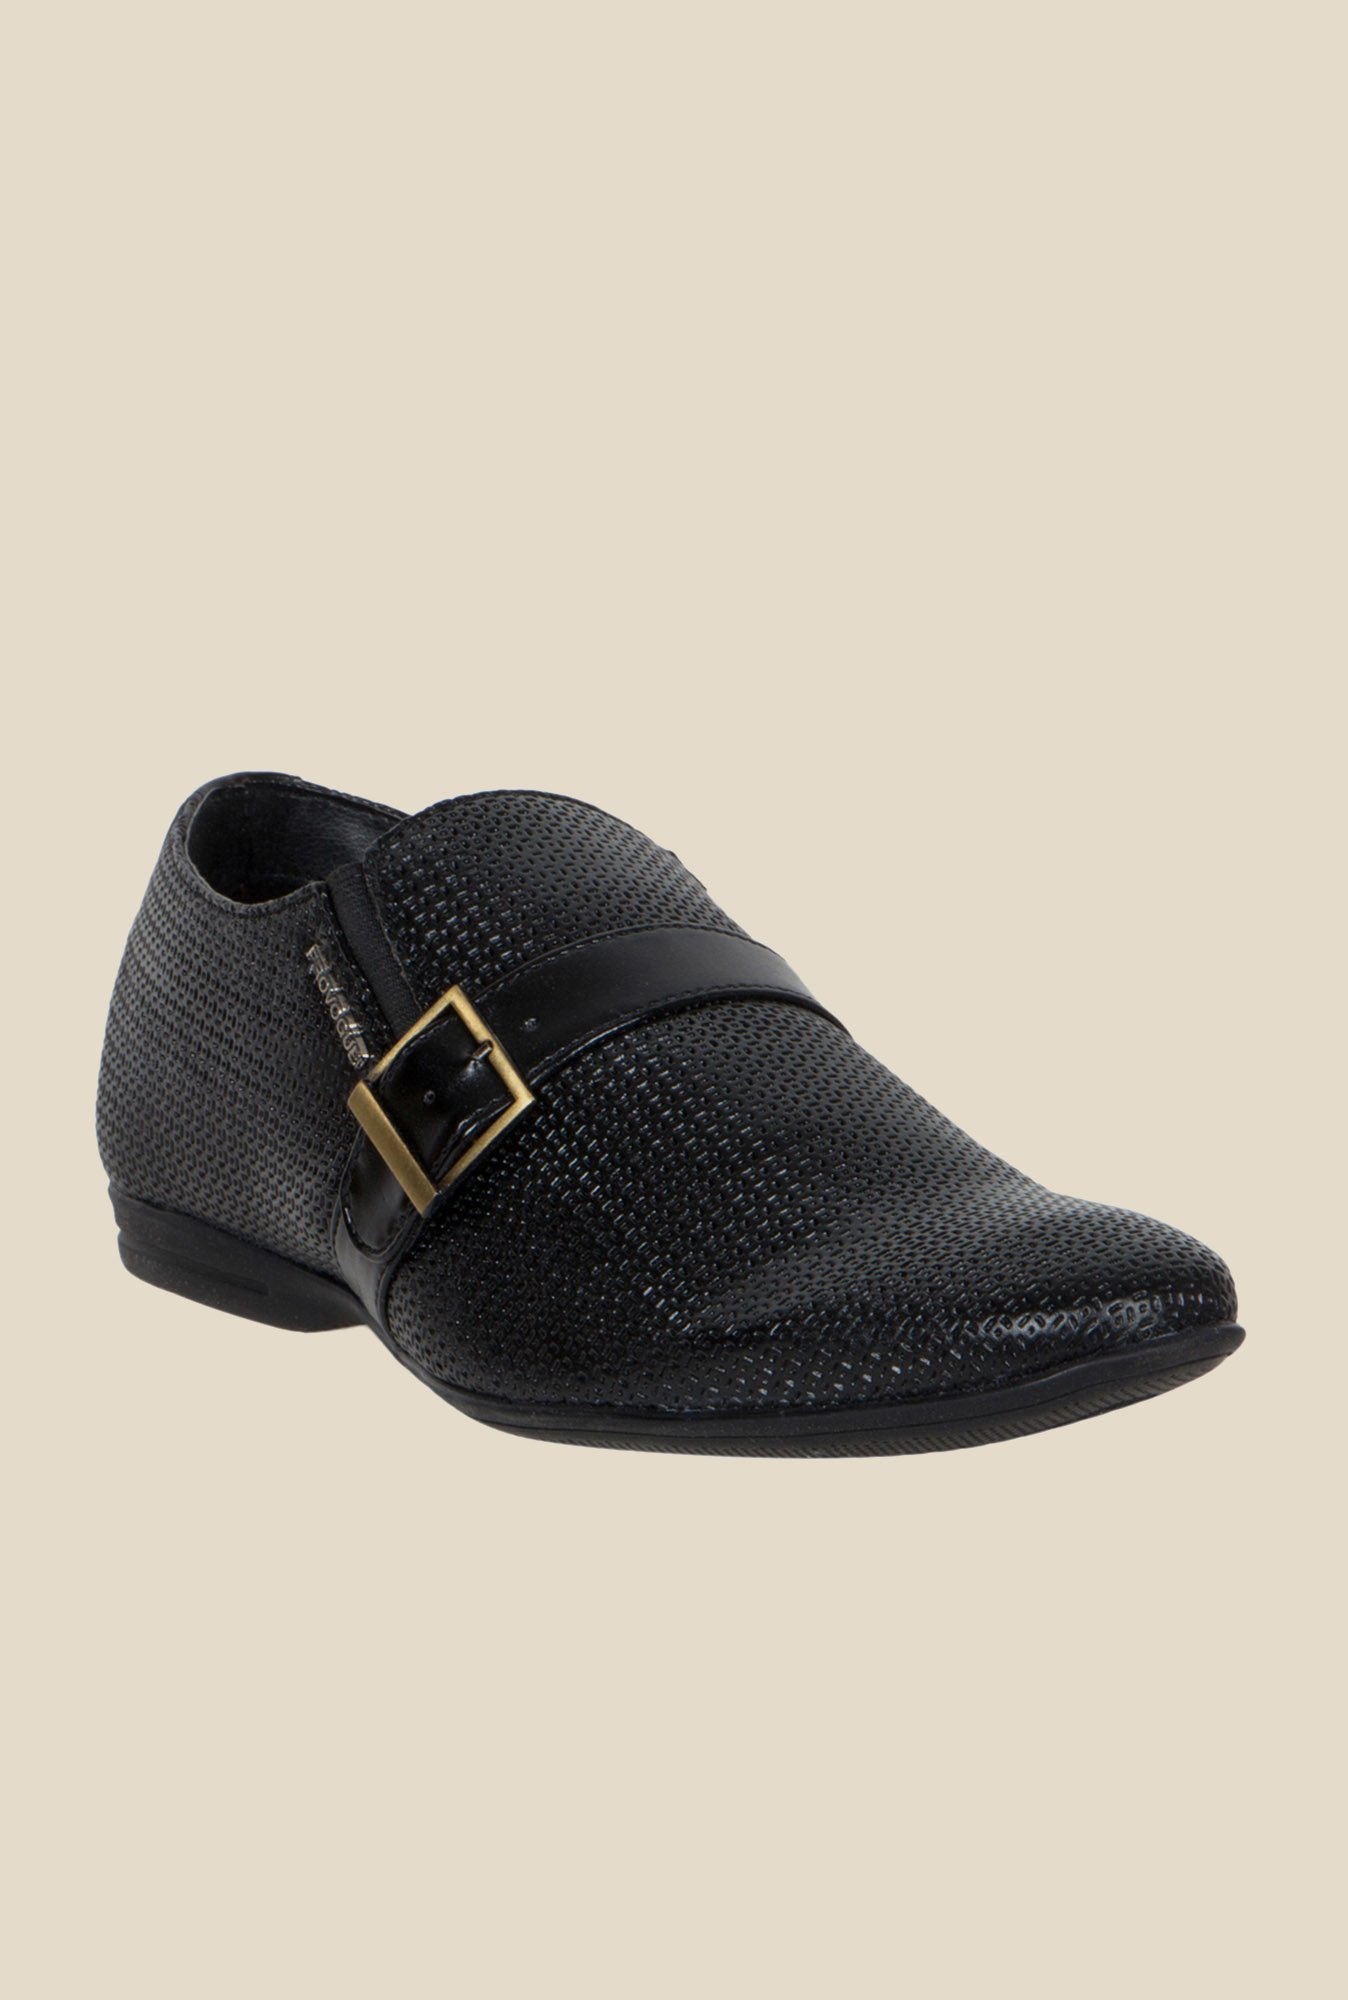 Provogue Black Monk Shoes